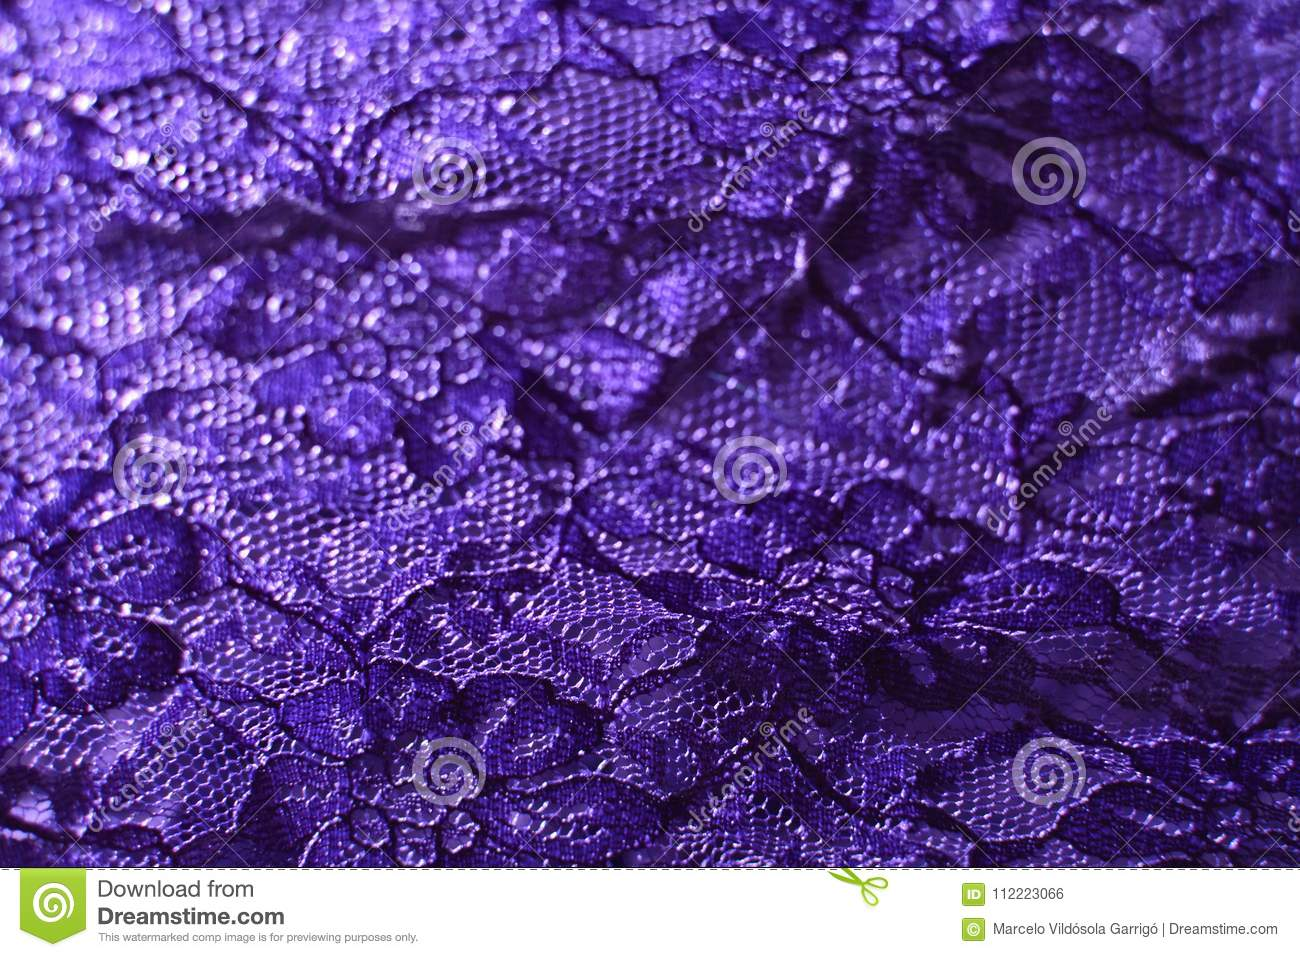 Texture of a lace fabric